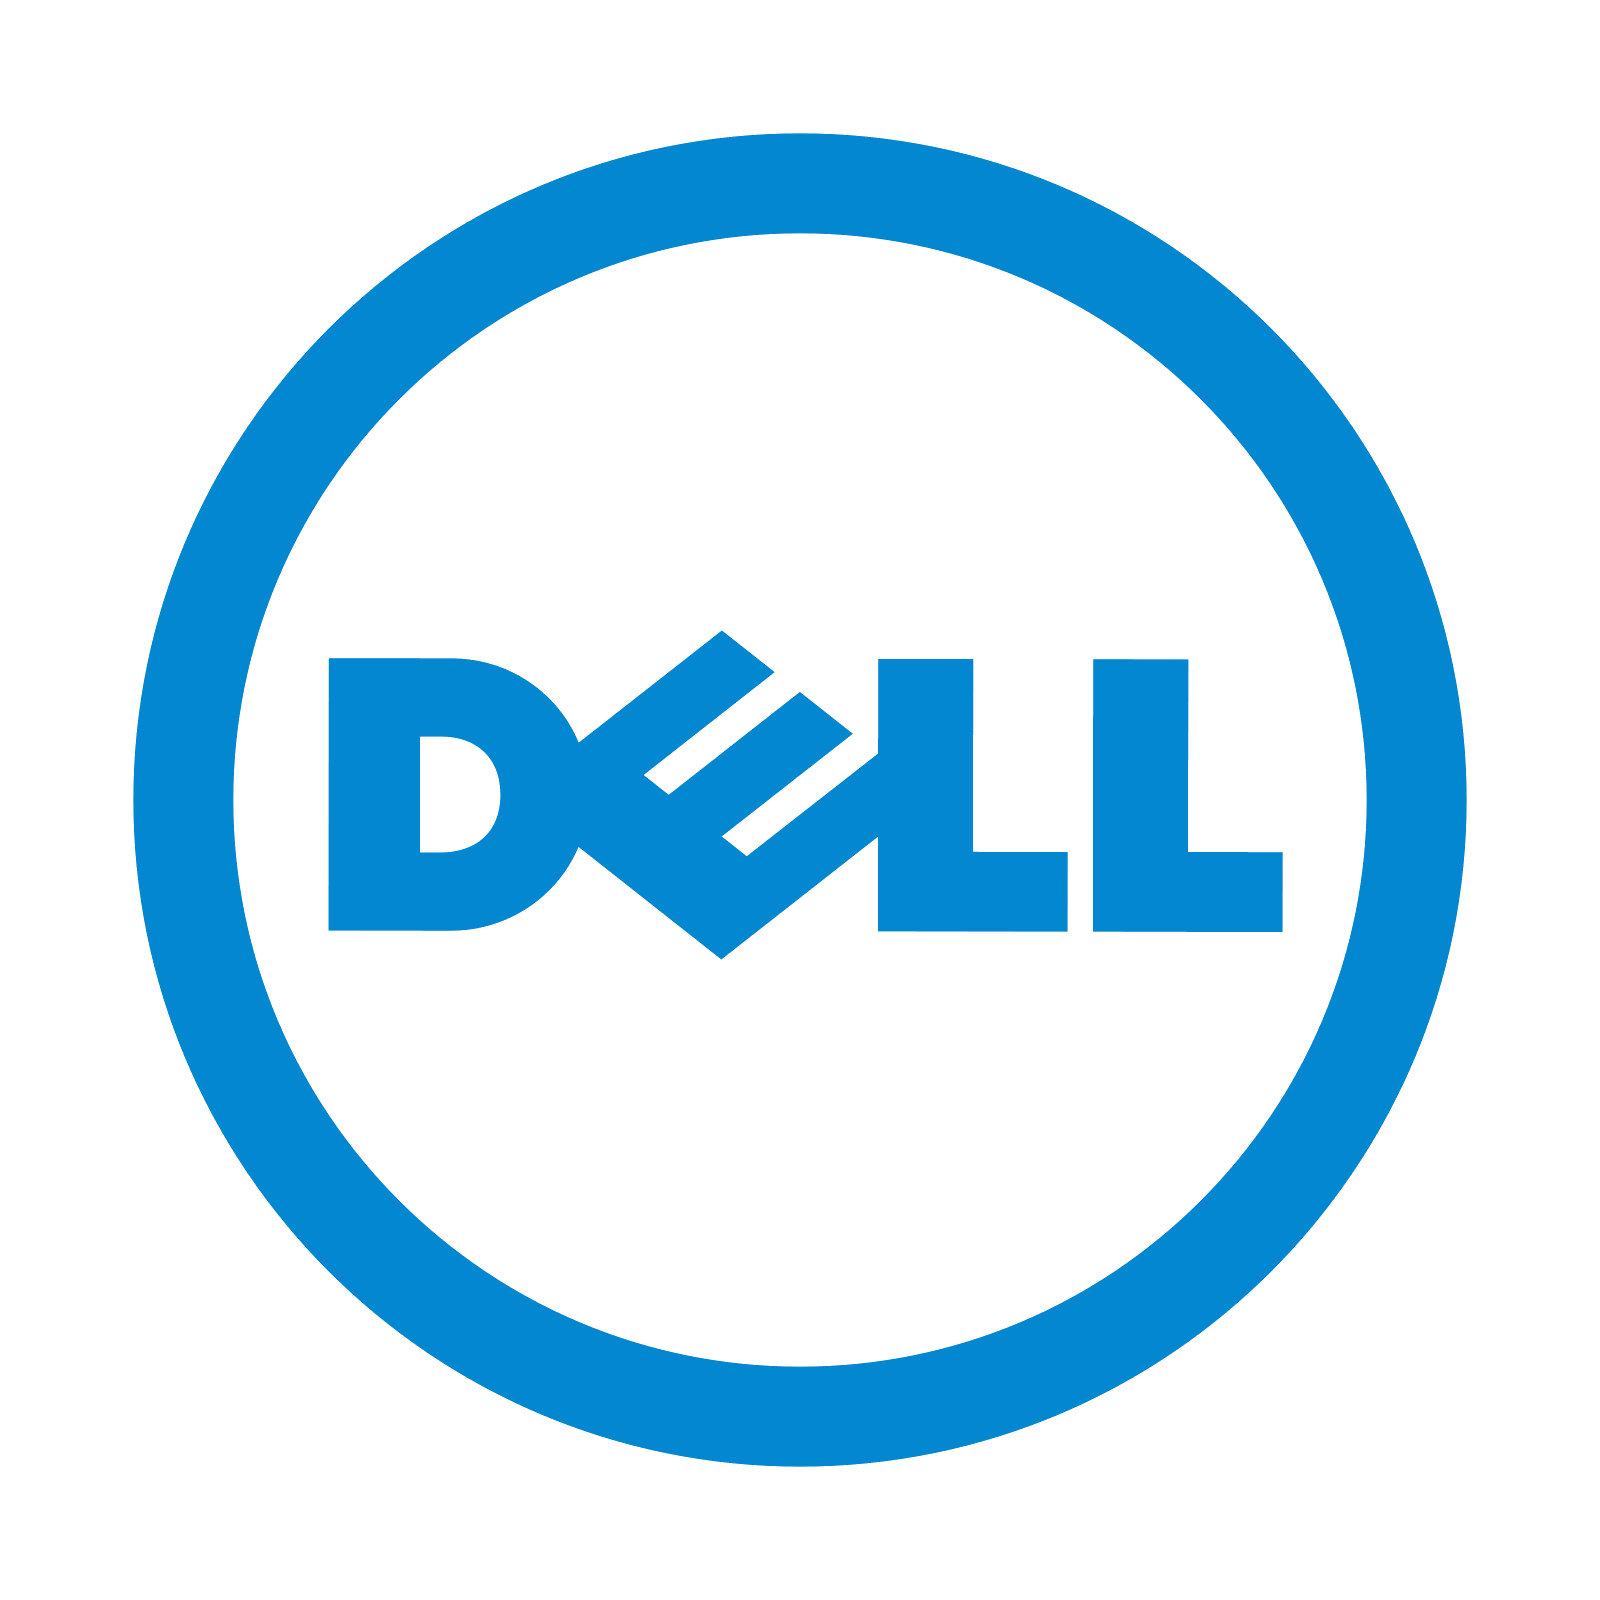 "Save up to 40% off new on select Dell Outlet 17, 19, 22, 24 & 25"" Monitors. Prices starting at $59 after 13% coupon applied. Limit 1 per customer. Limited stock. Free shipping & warranty included"